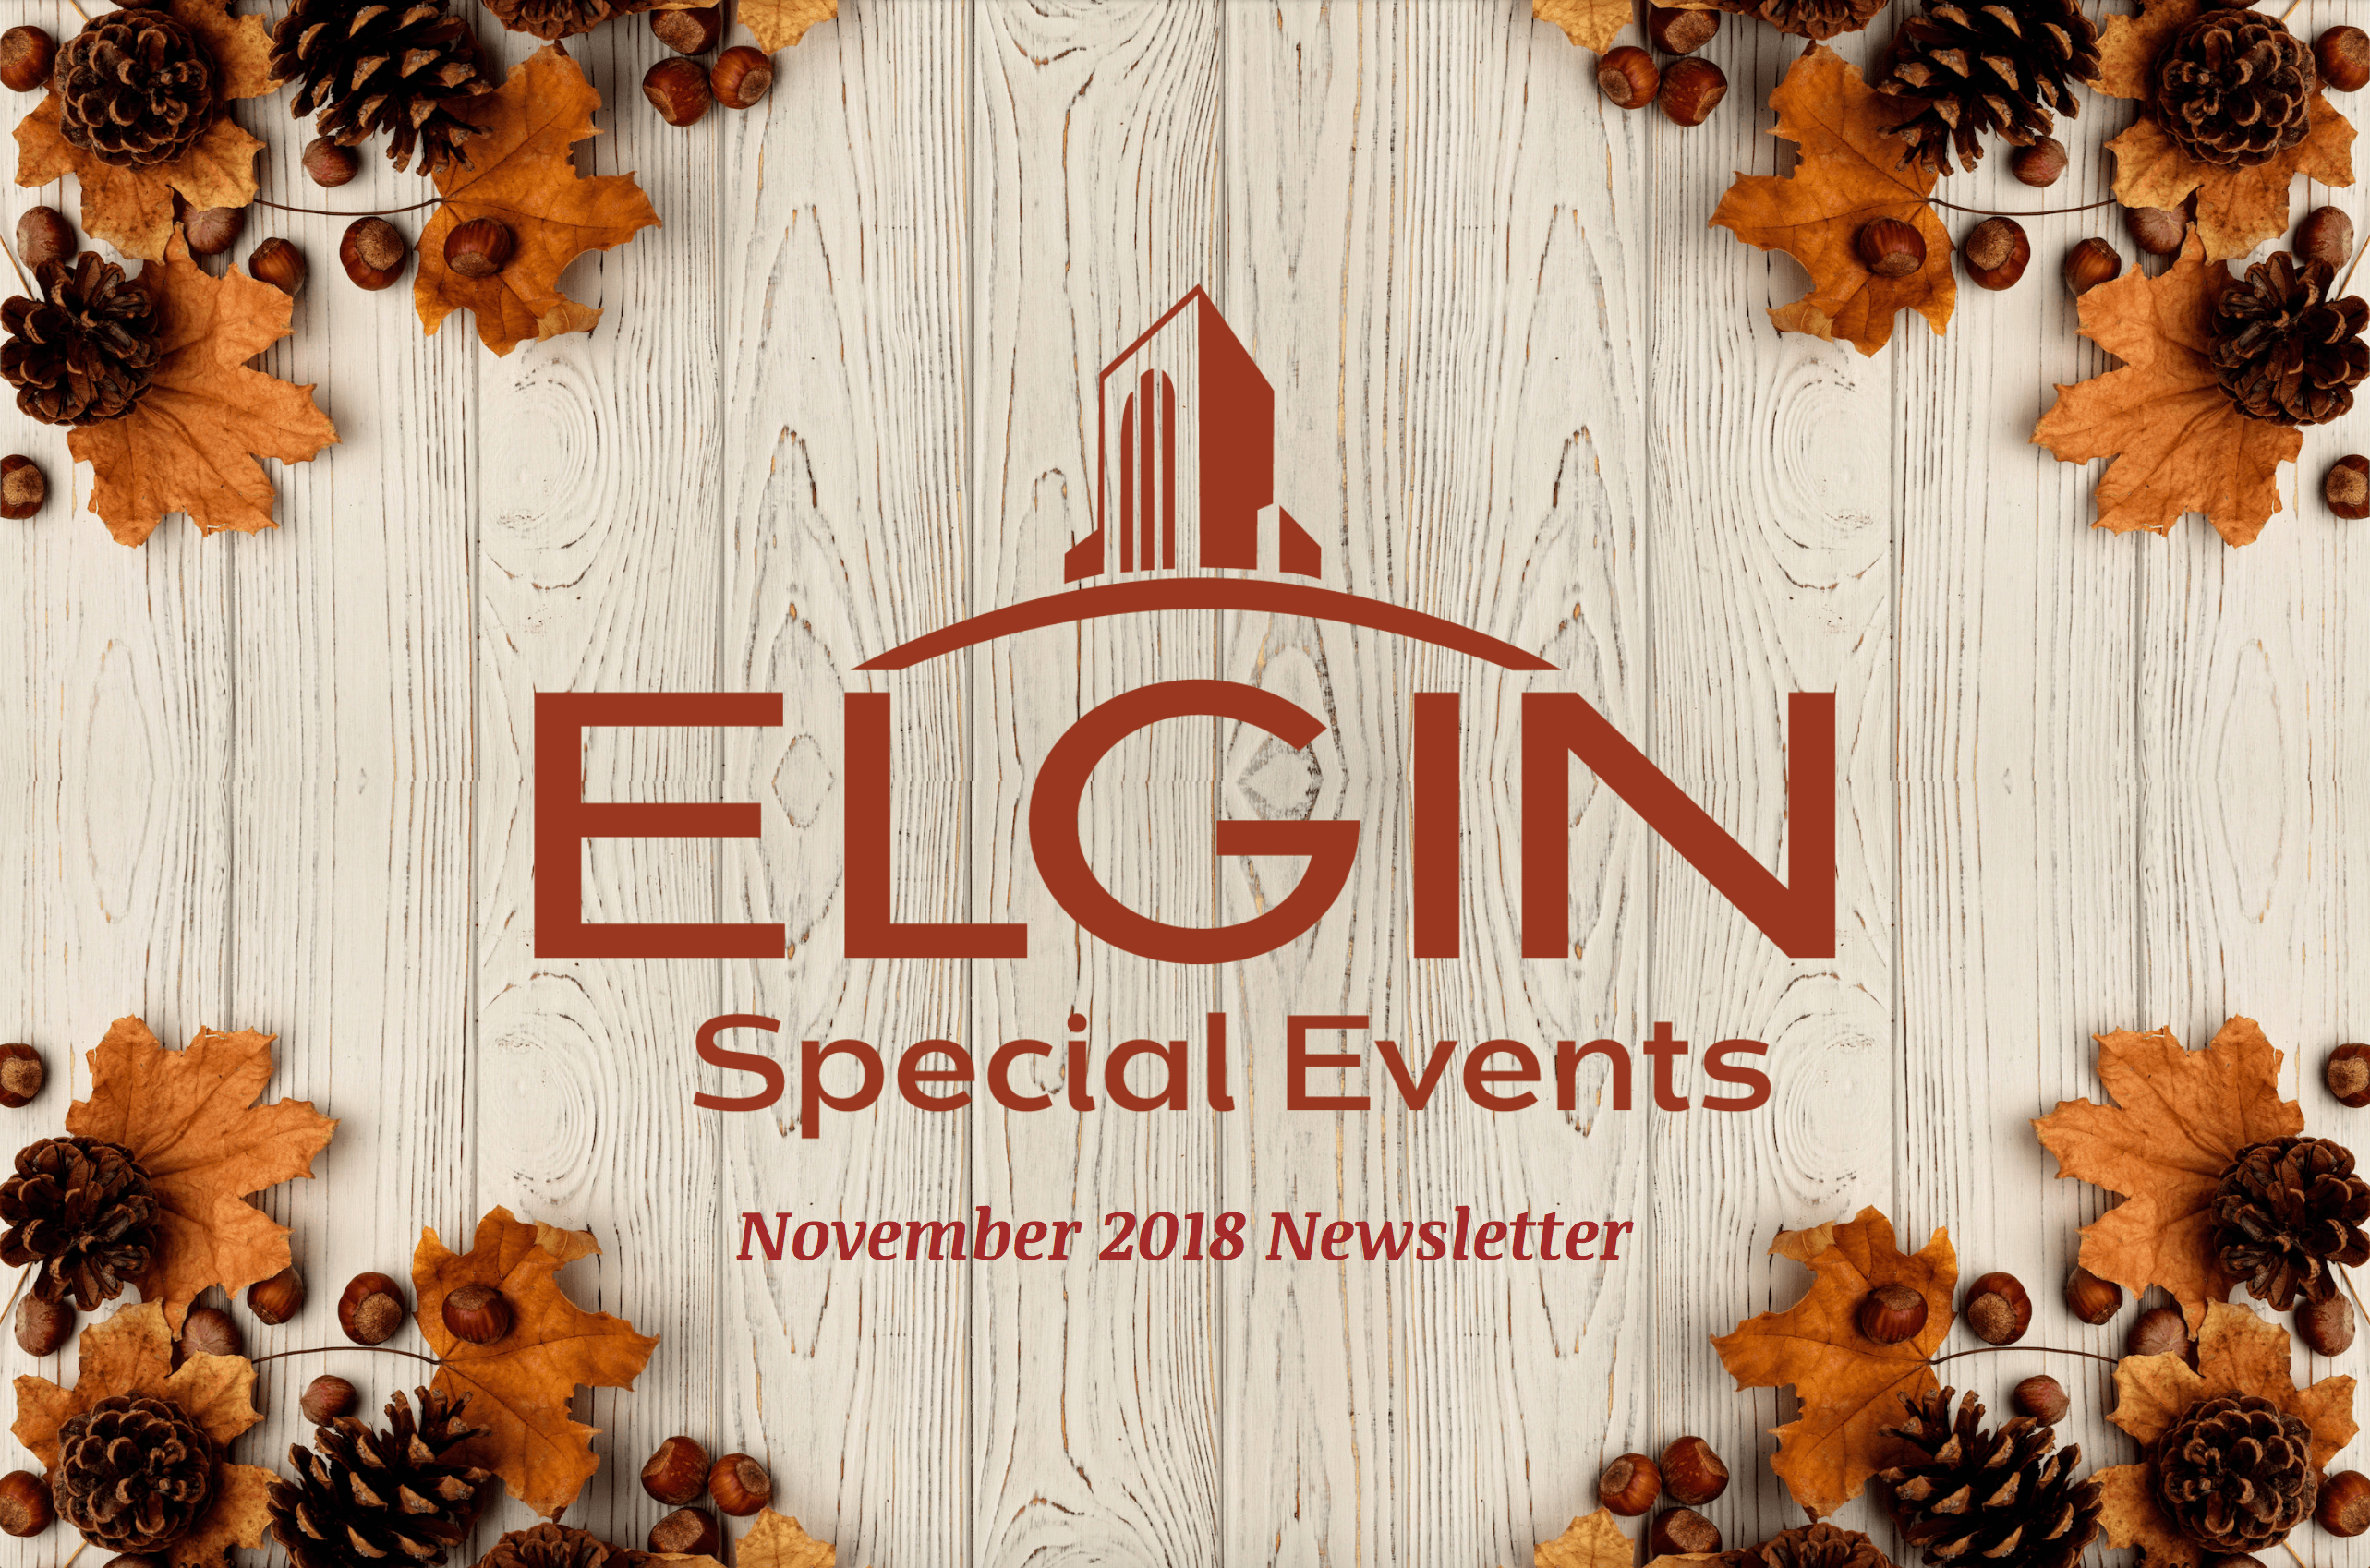 Nov Special Events Newsletter Cover- fall theme